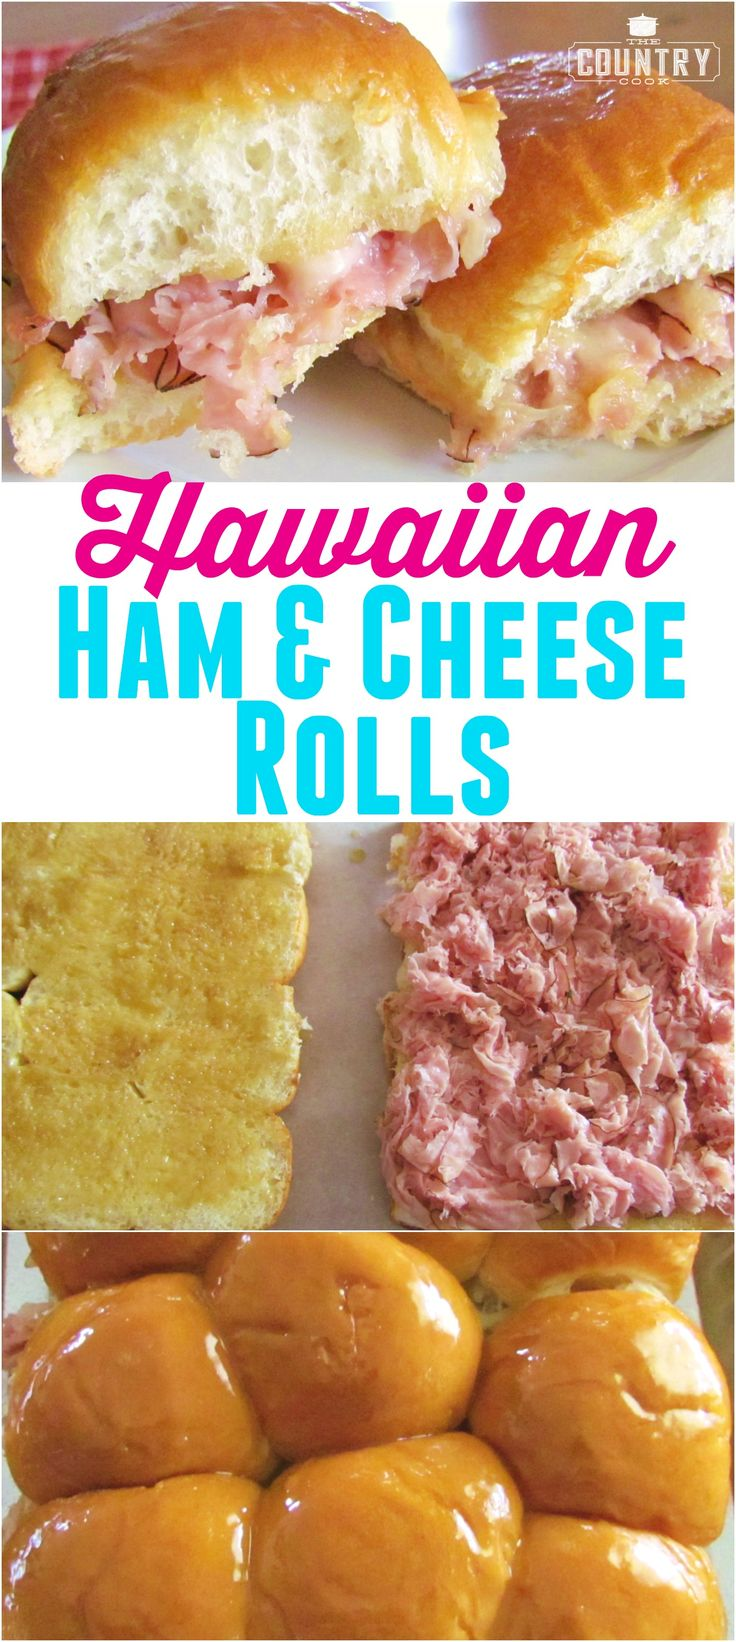 Hawaiian Ham and Cheese Rolls recipe from The Country Cook. with the most AMAZING glaze!